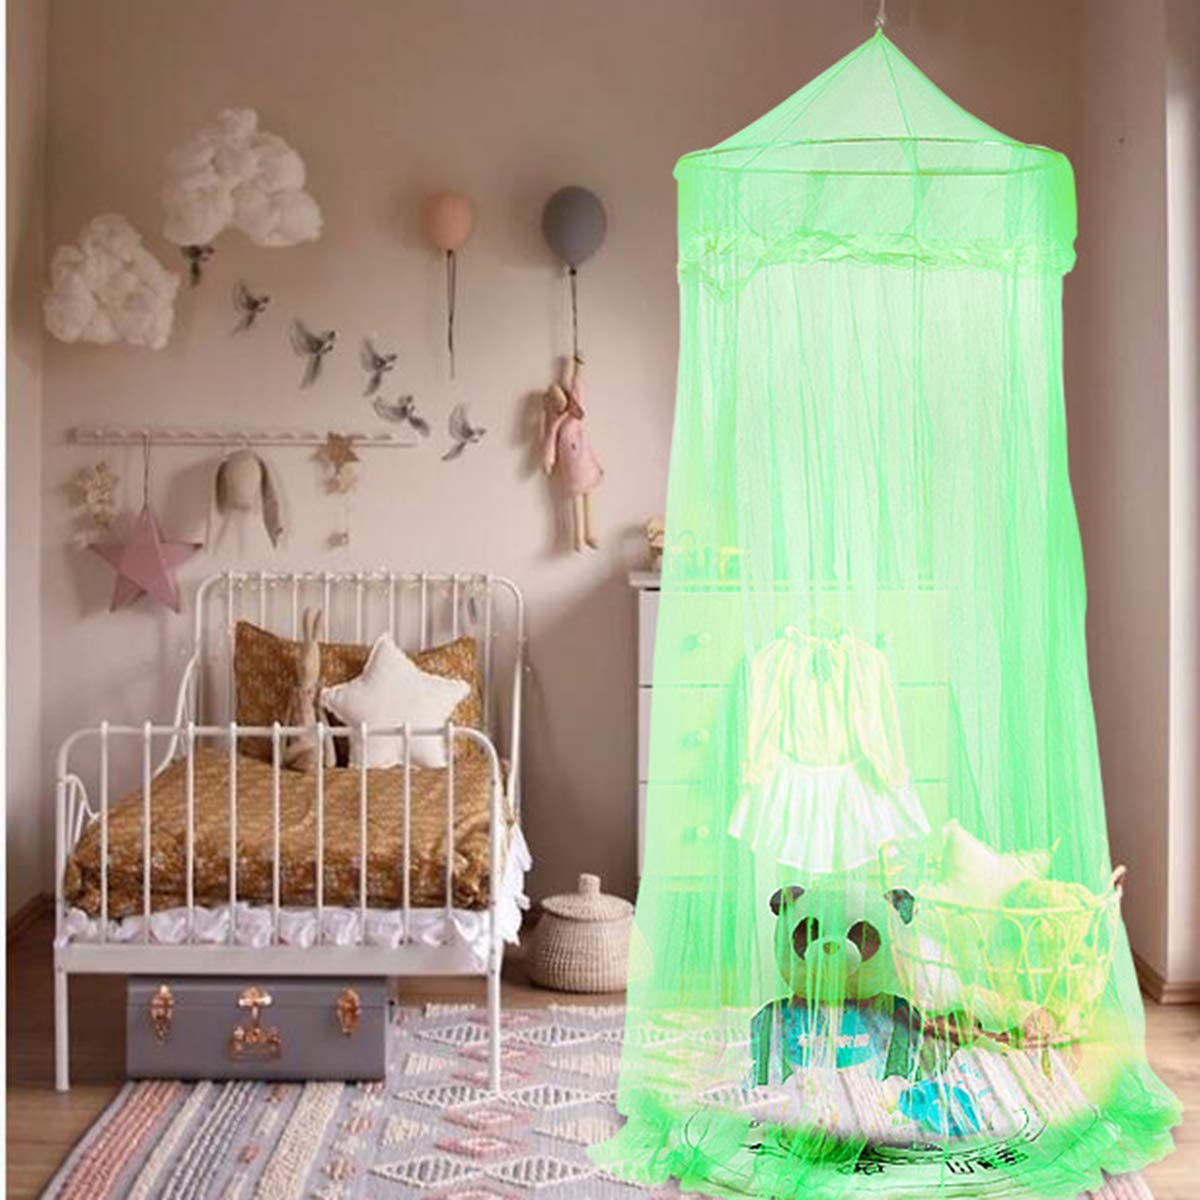 Blue Owlike Insect Mosquito Net Bed Canopy Lace Netting Mesh Drape Cover for Princess Sweet Baby Bedding